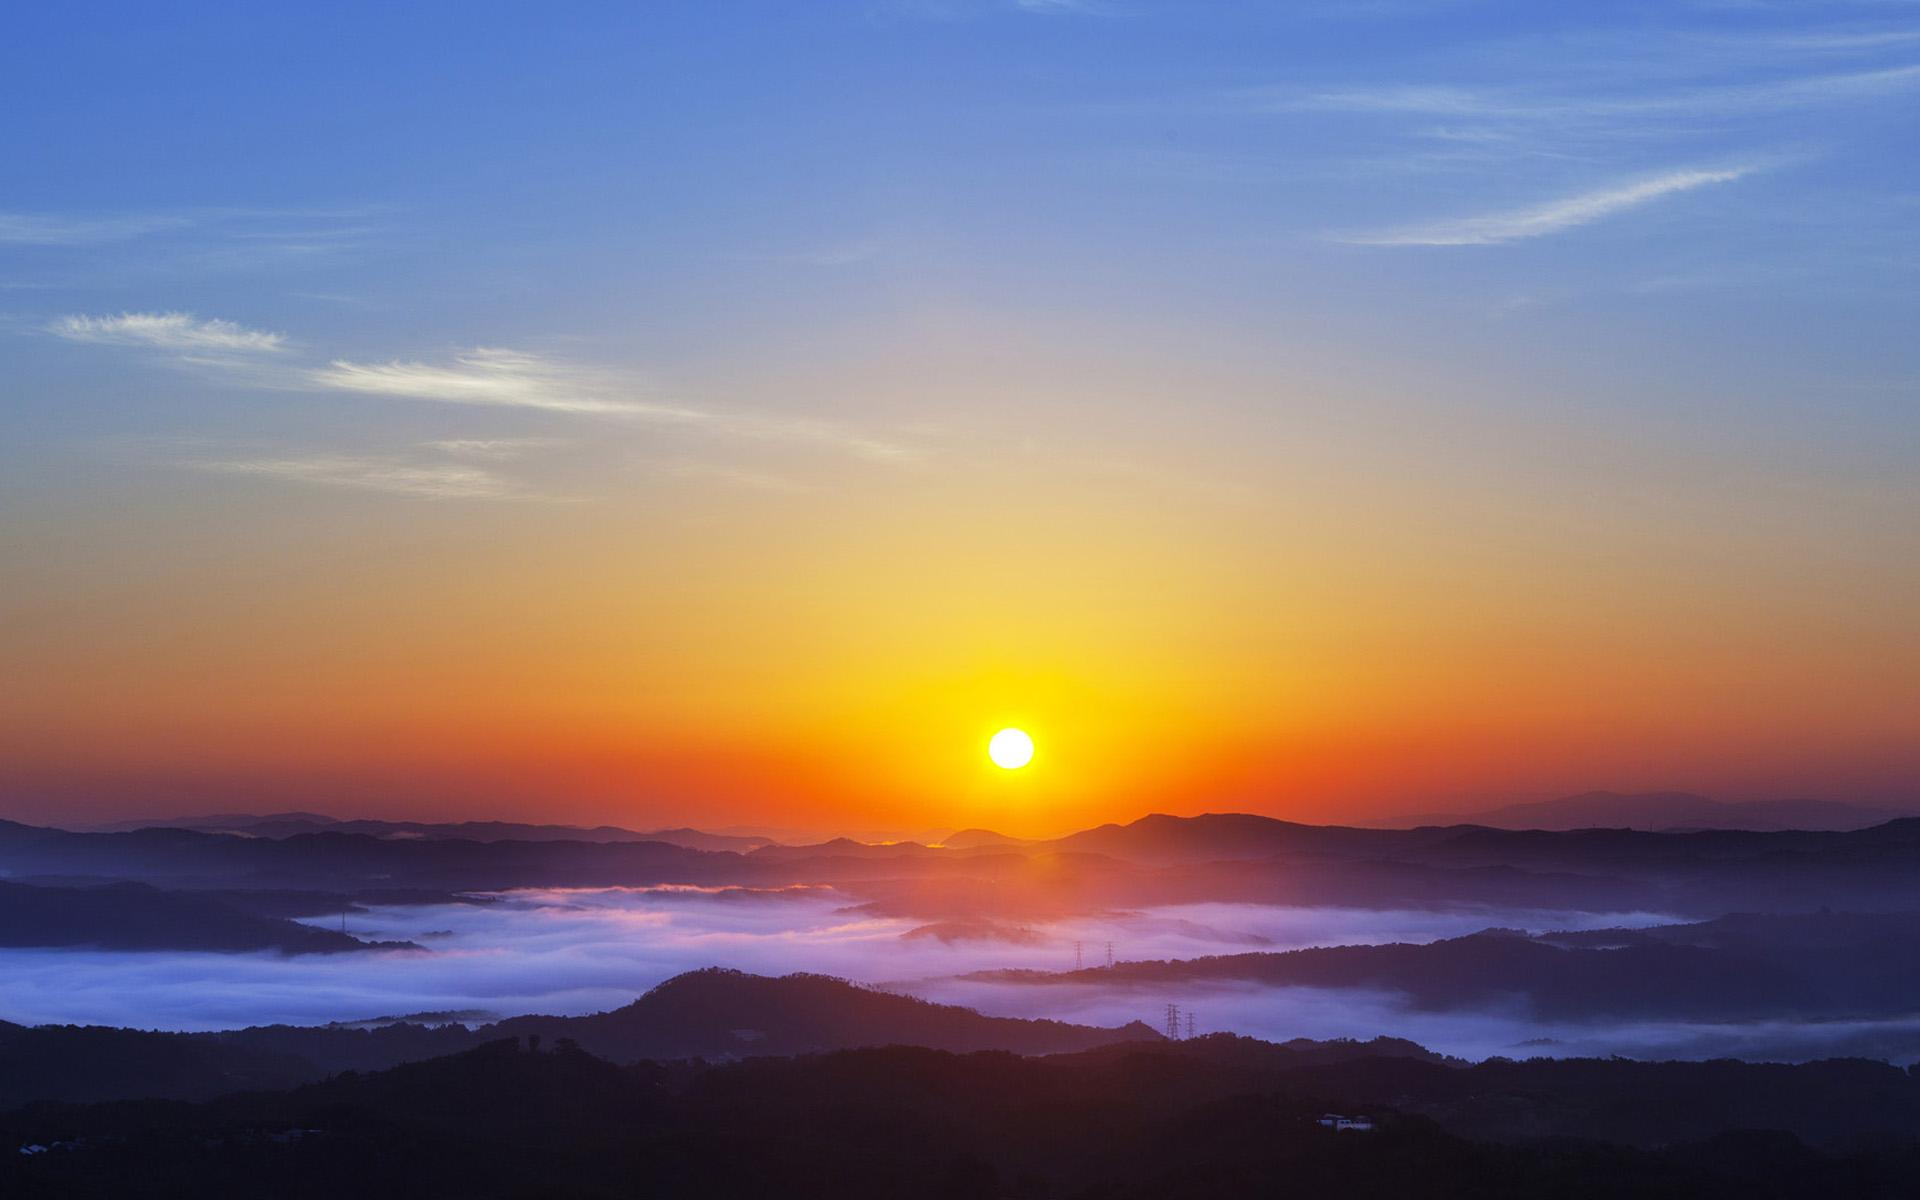 Sunrise Wallpapers For Desktop - Wallpaper Cave